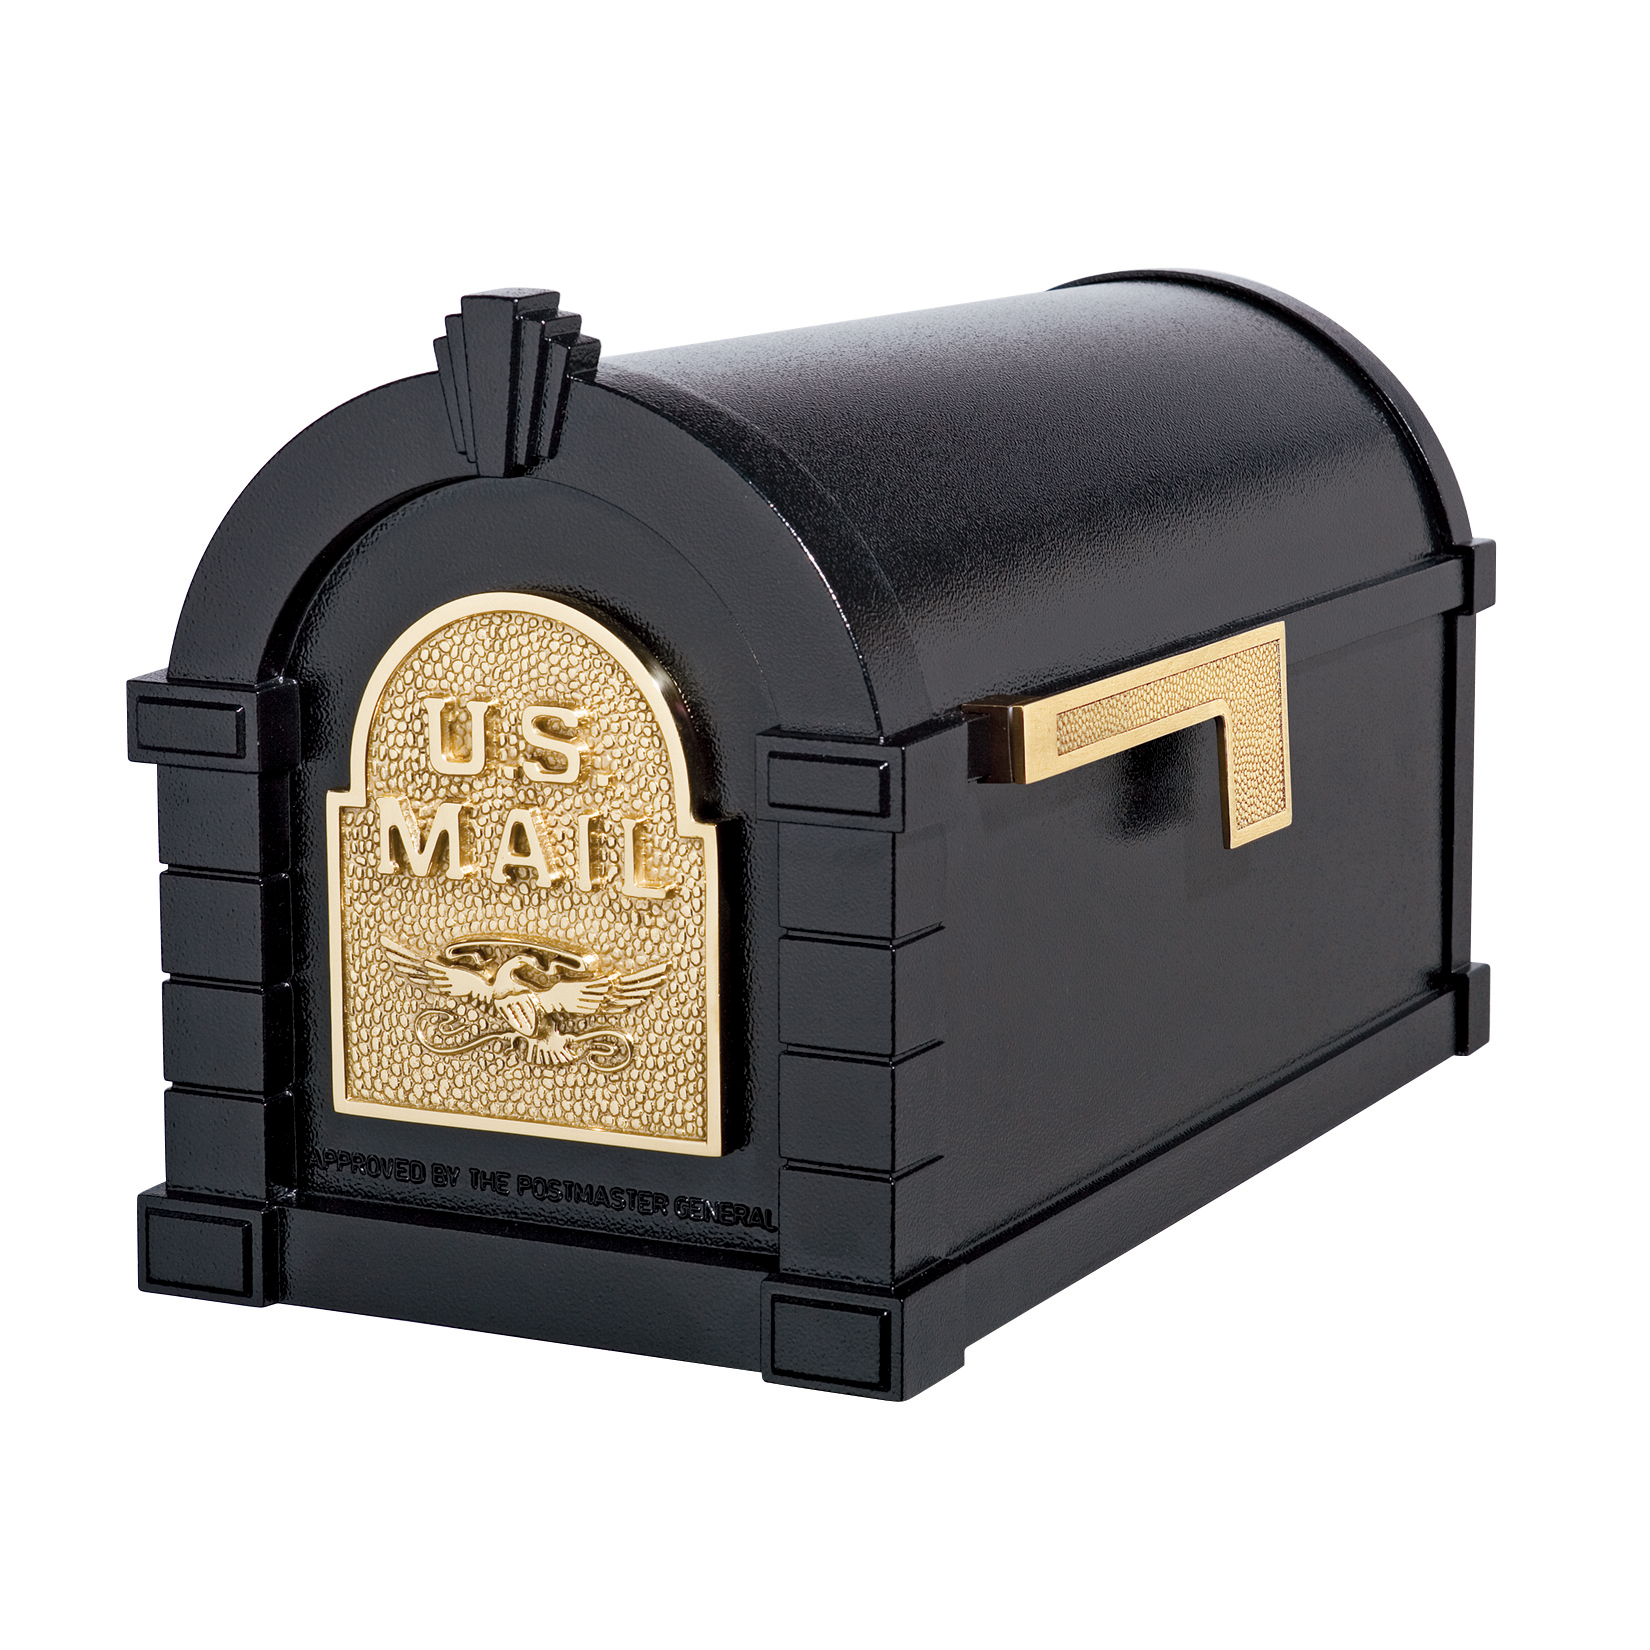 Gaines Eagle Keystone Mailboxes - Black with Polished Brass